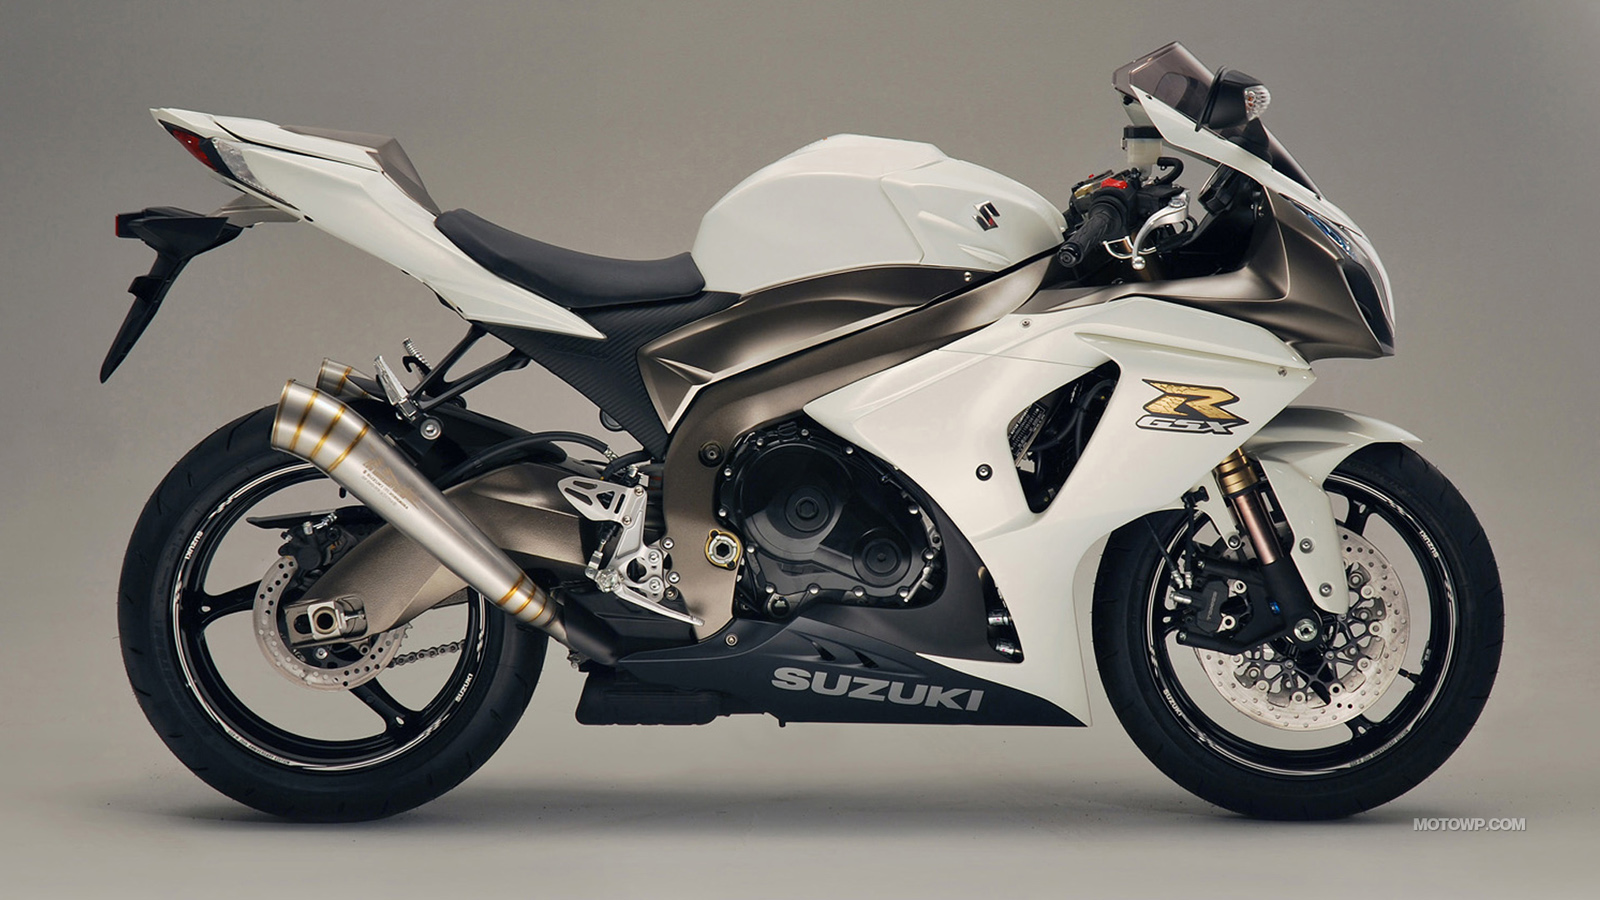 2010 suzuki gsx r 1000 pics specs and information. Black Bedroom Furniture Sets. Home Design Ideas